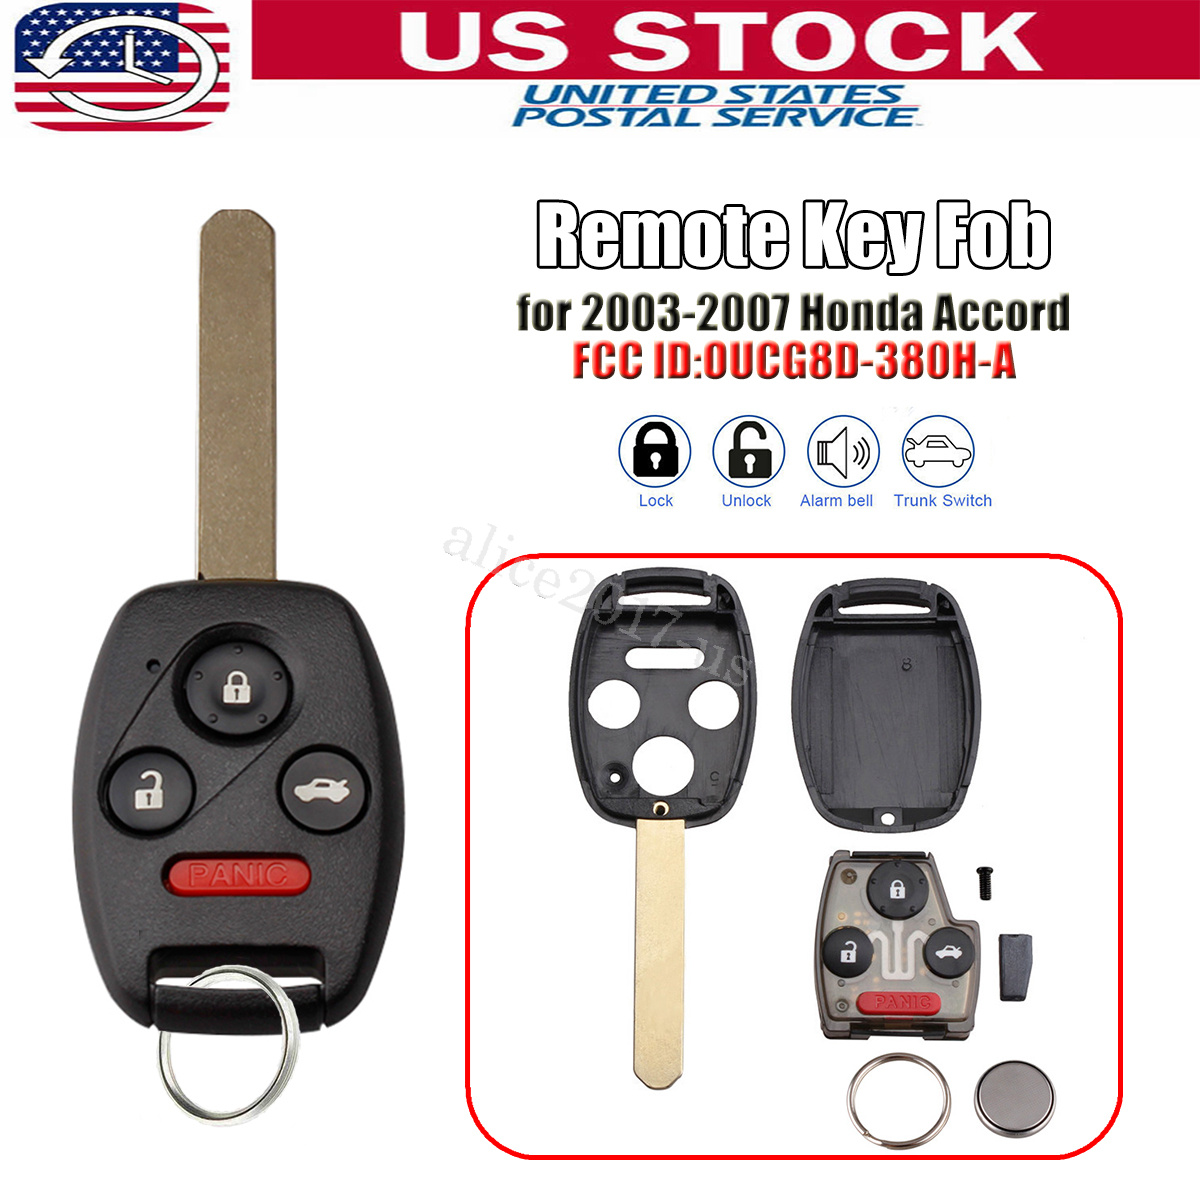 Fit 2003 2004 2005 2006 2007 Honda Accord Remote Key Fobs OUCG8D-380H-A OEM